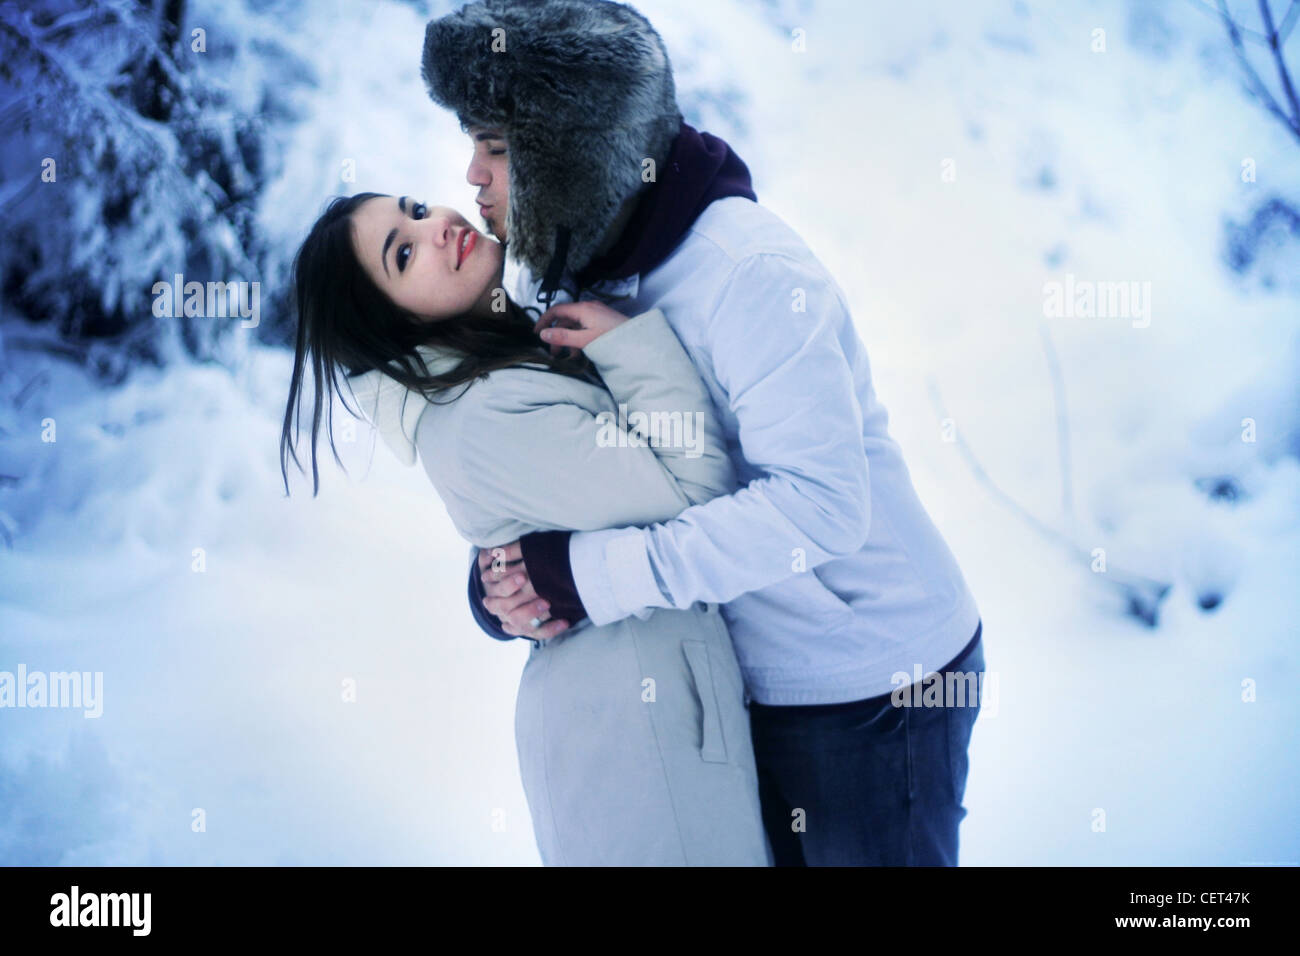 Young adult couple in winter embrace outdoors in snow - Stock Image